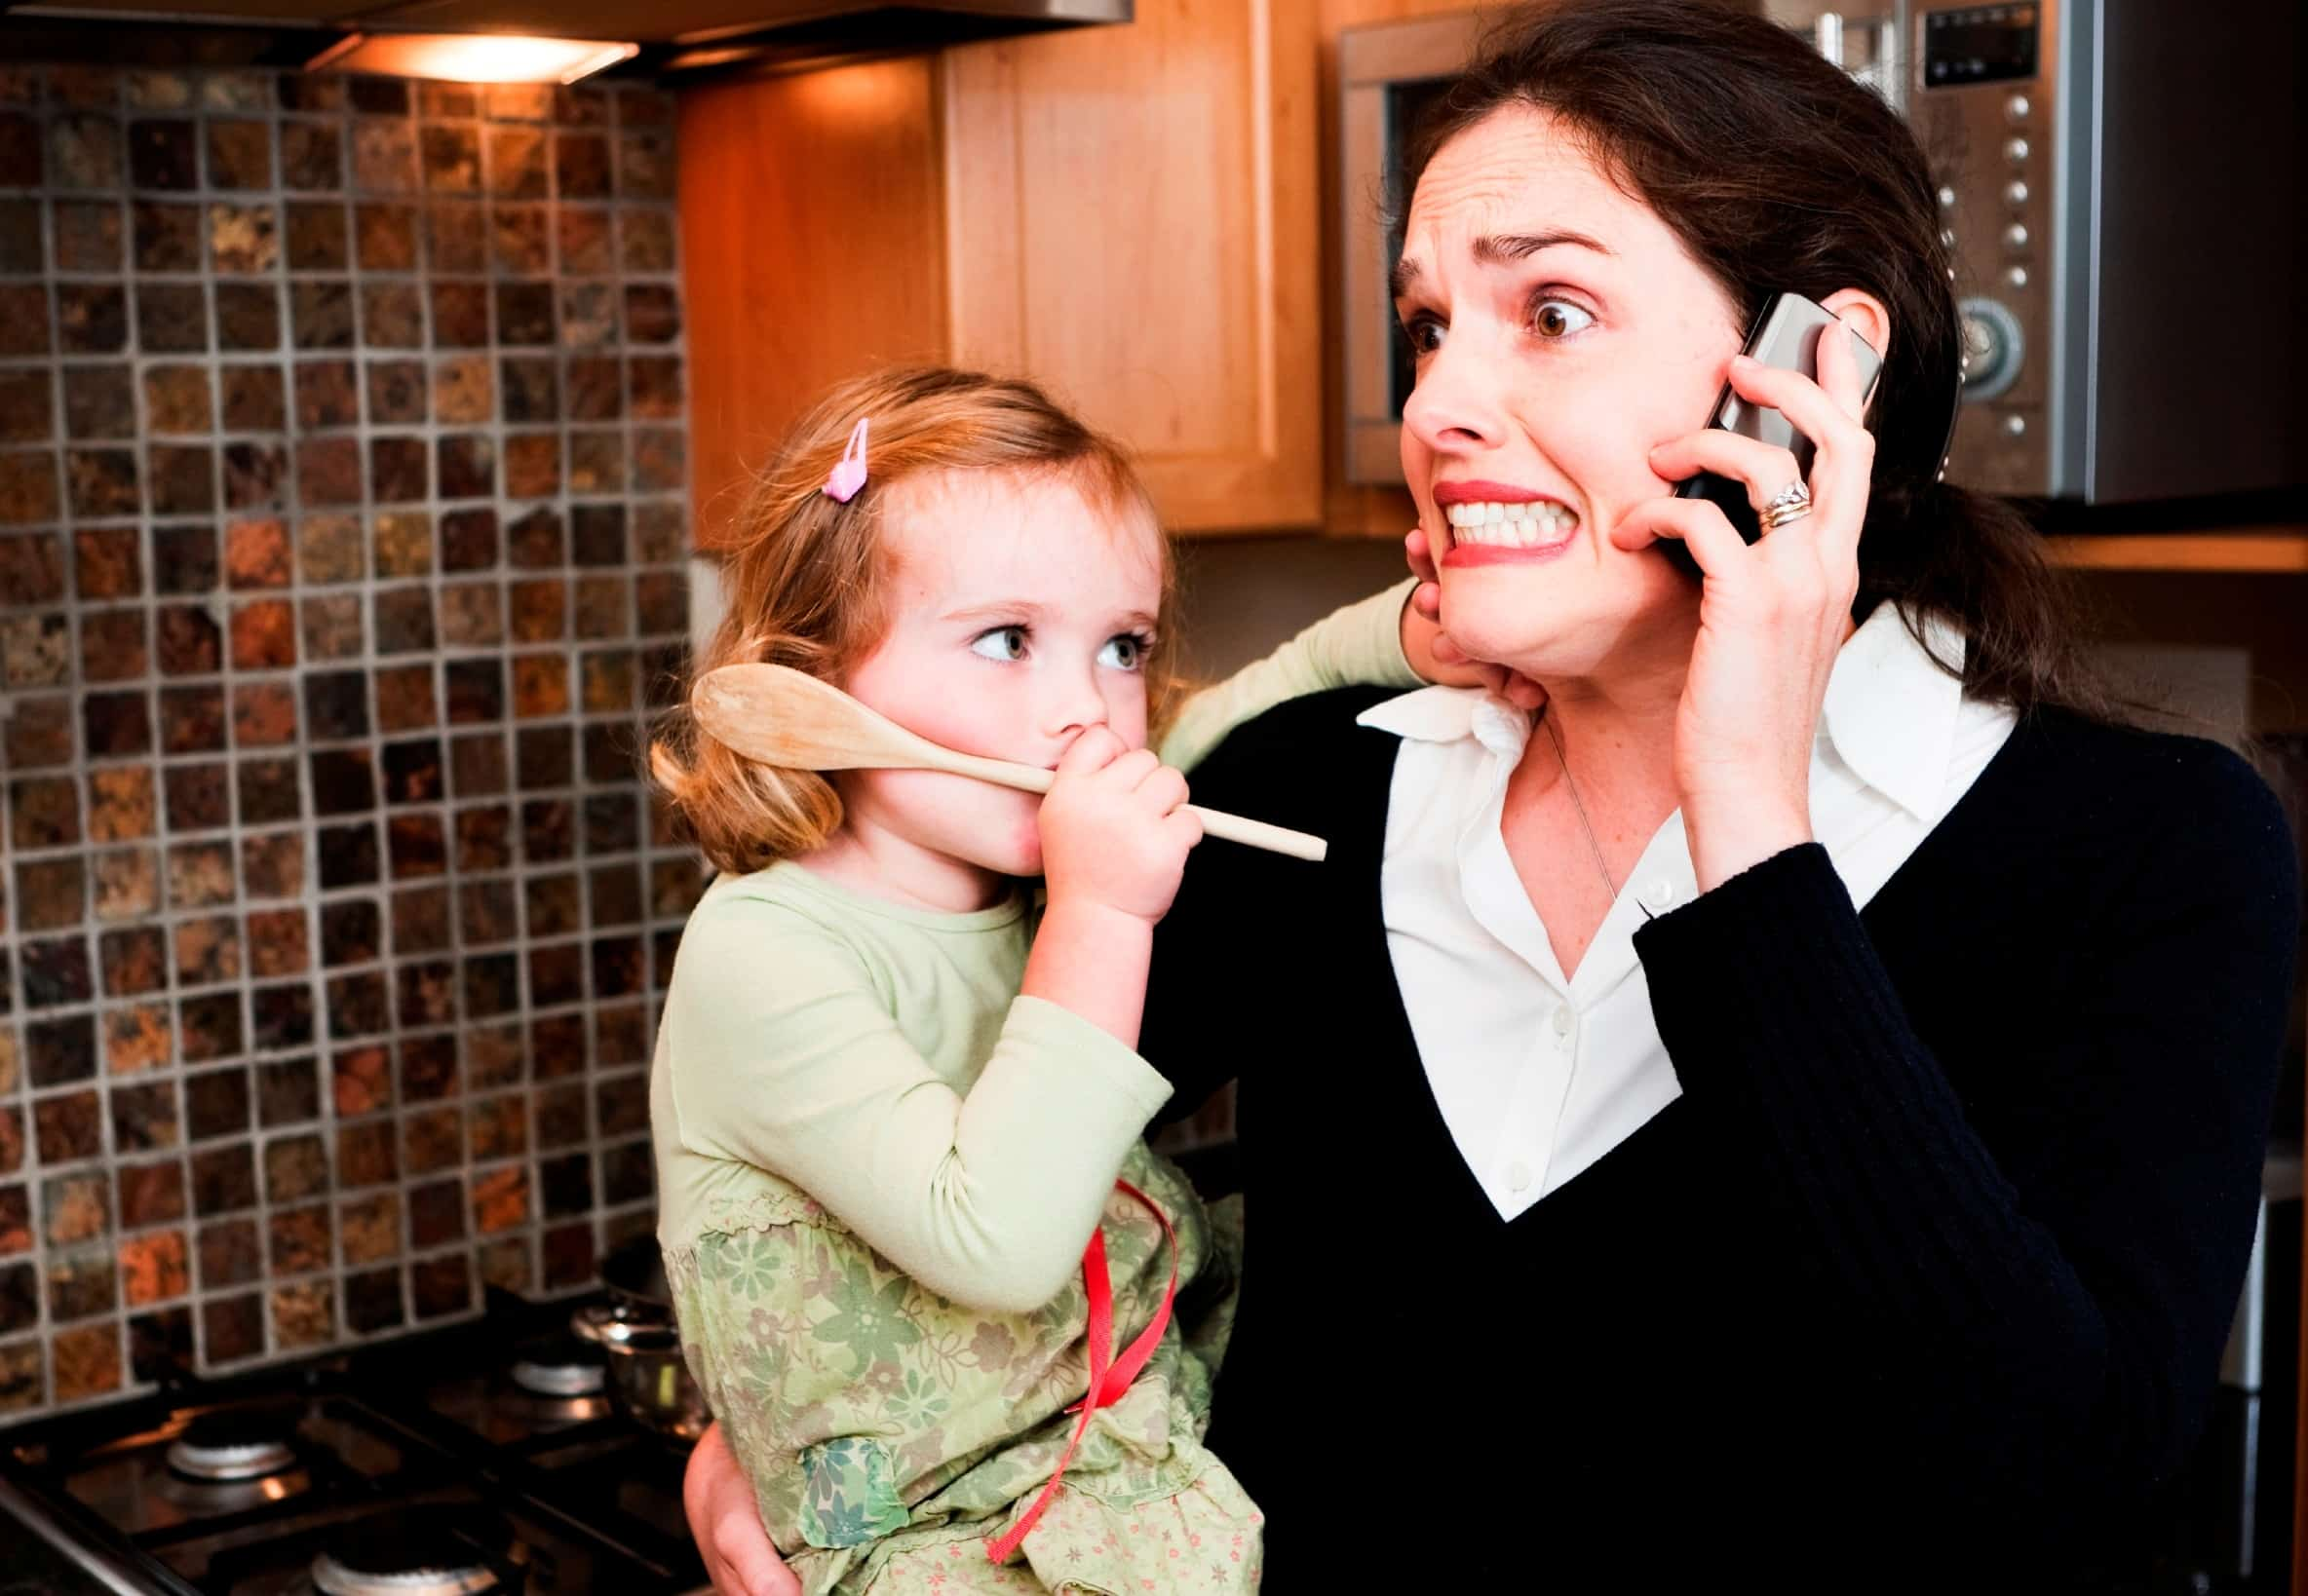 Women with toddler calling pest control about ants in the kitchen